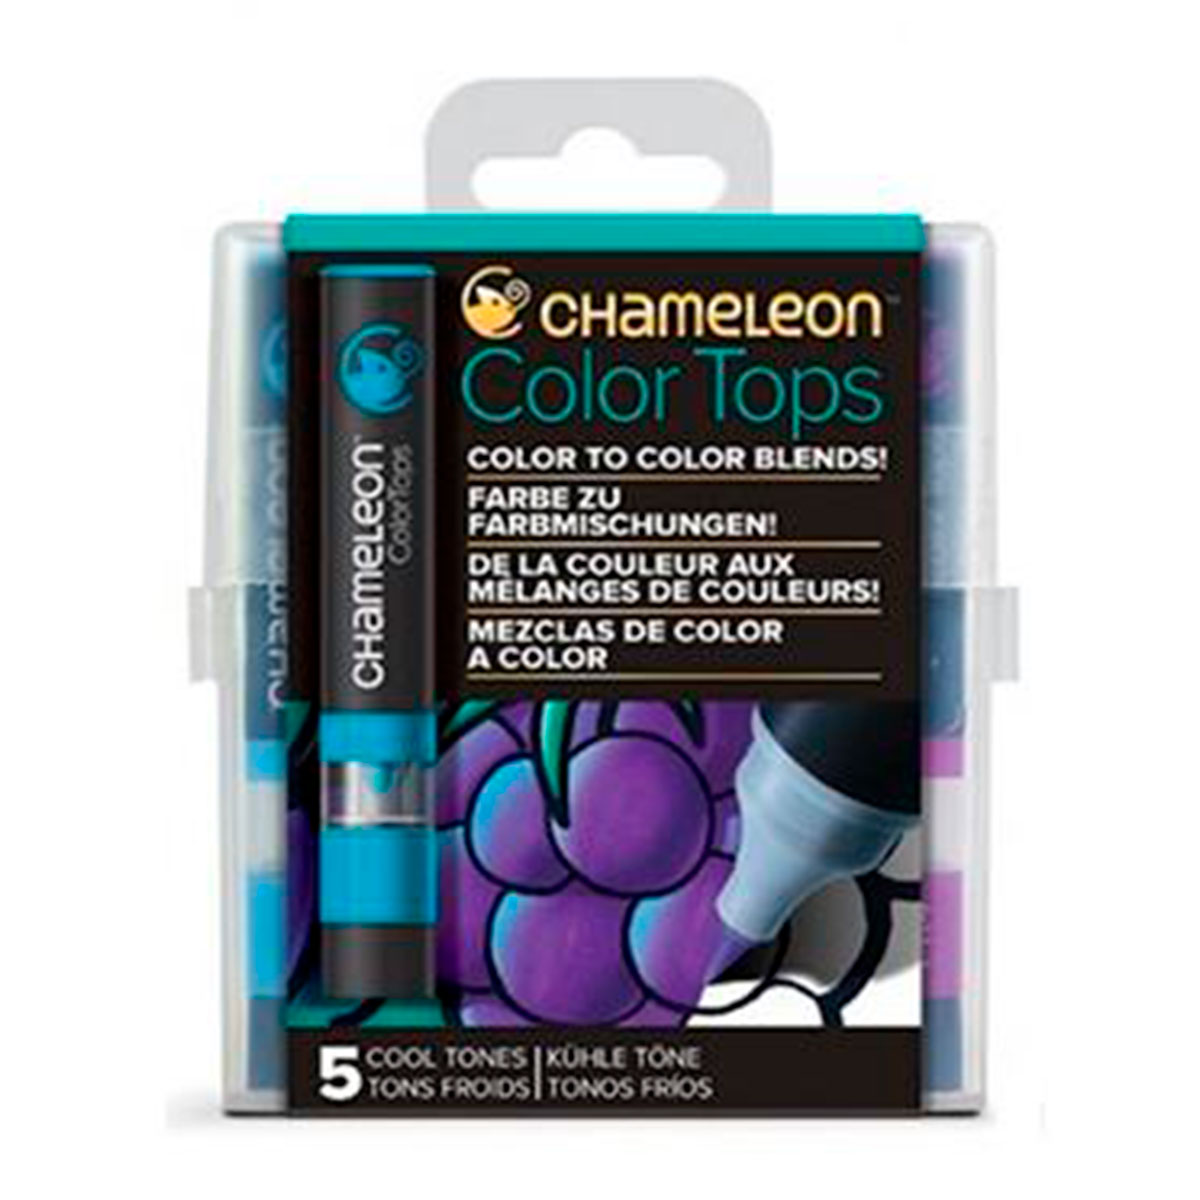 CT45-04 CHAMELEON                                                    | MARCADORES COLOR TOPS SET POR 5 COLORES TONOS FRIOS